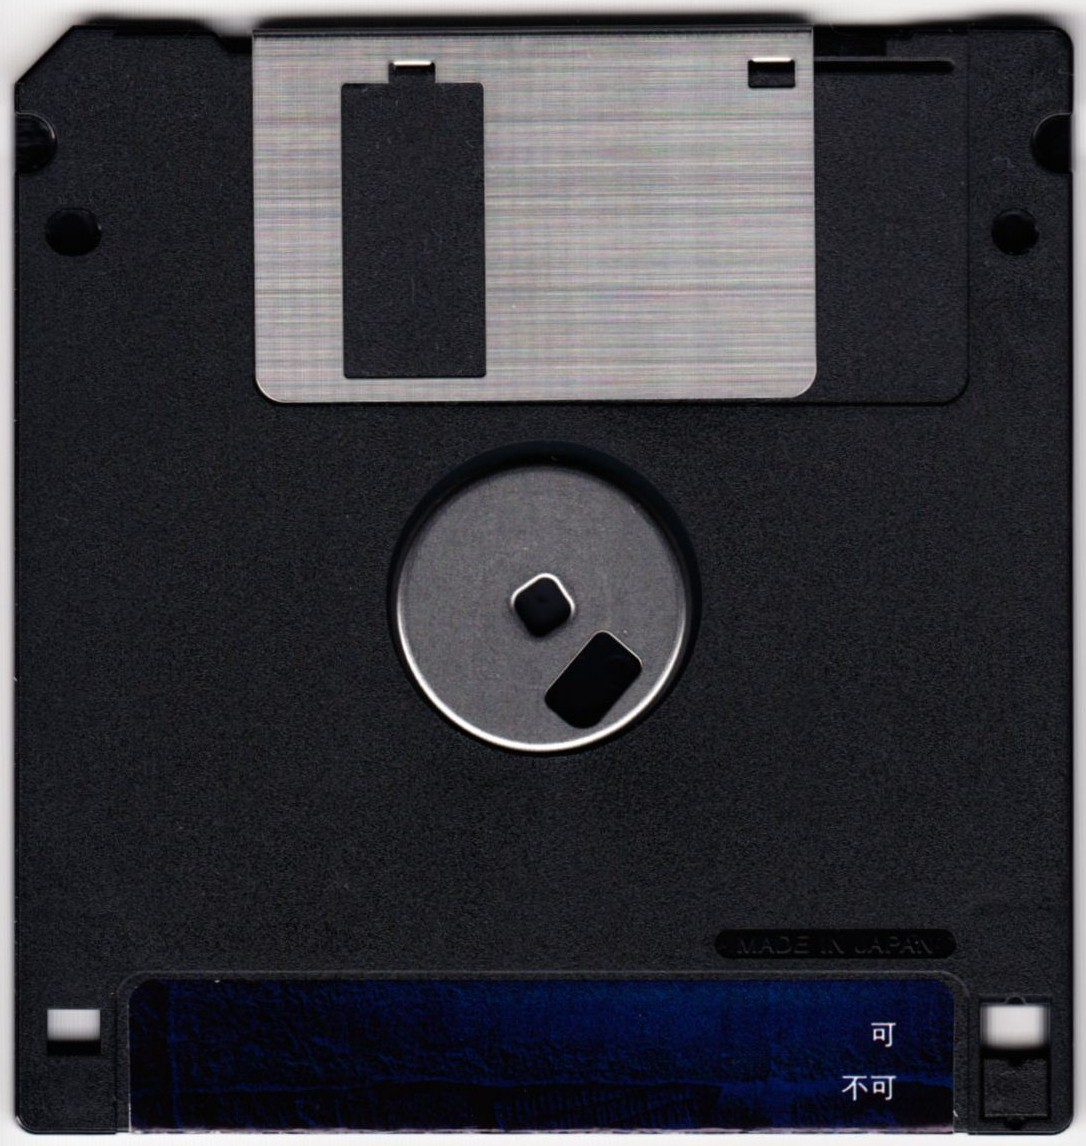 Game - Dungeon Master II - JP - PC-9801 - 3.5-inch - Disk A Startup Disk - Back - Scan